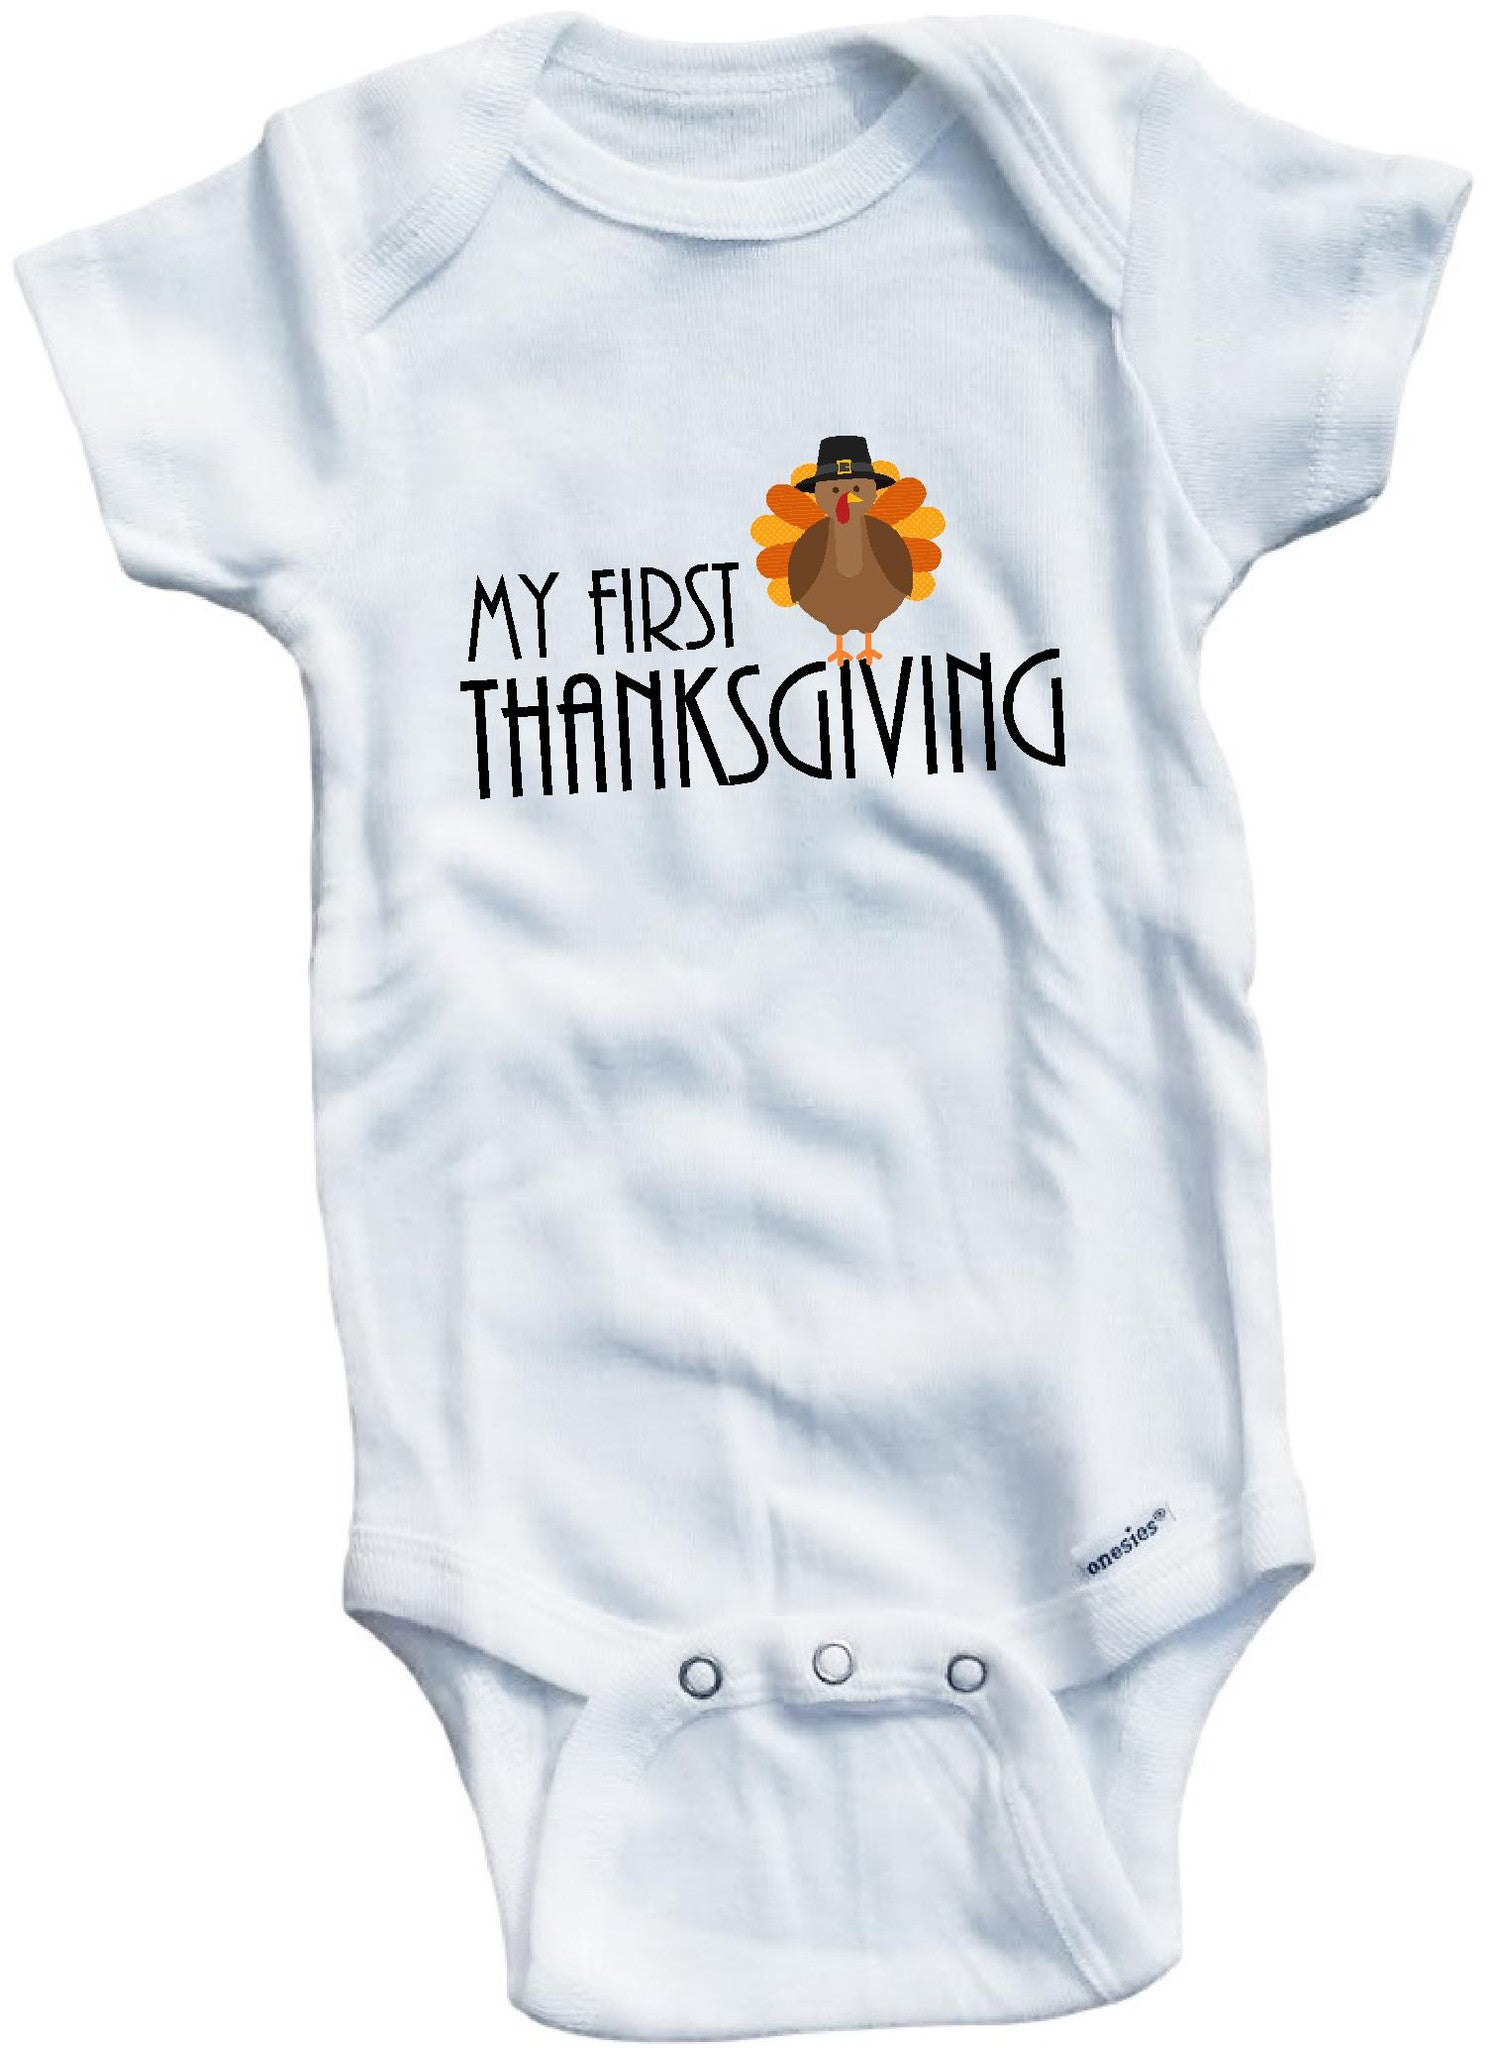 My First Thanksgiving Cute Infant Clothing Funny Baby Clothes